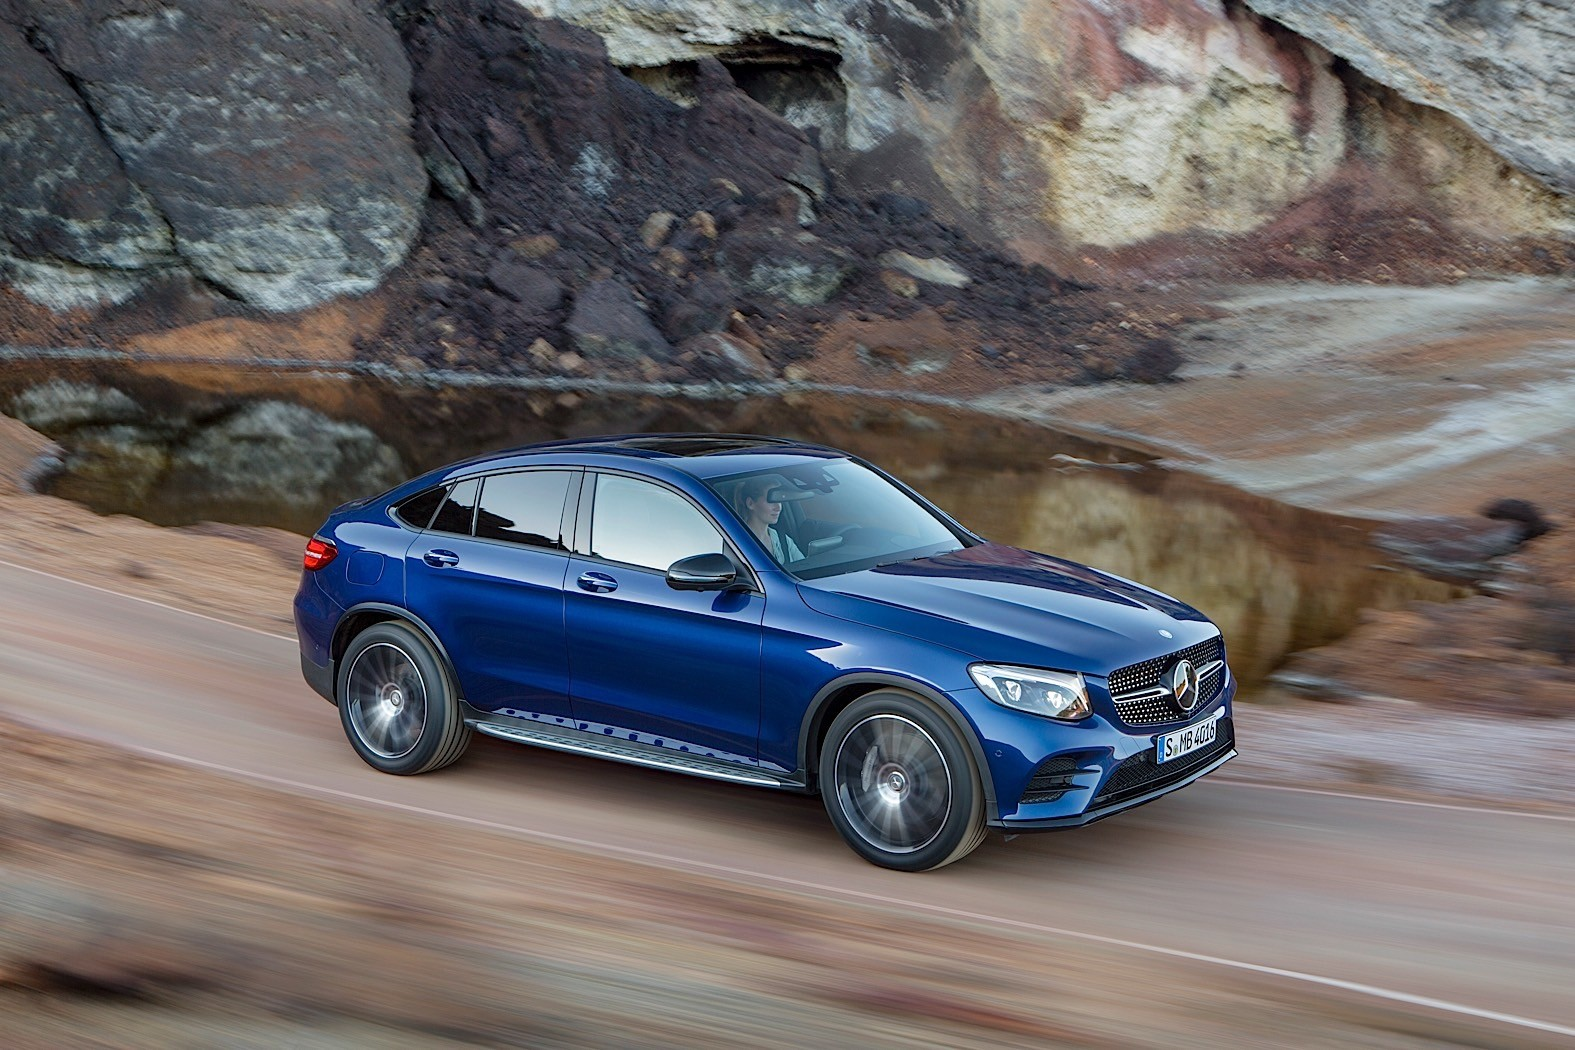 2017 mercedes benz glc coupe is out for bmw x4 blood in for Bmw and mercedes benz